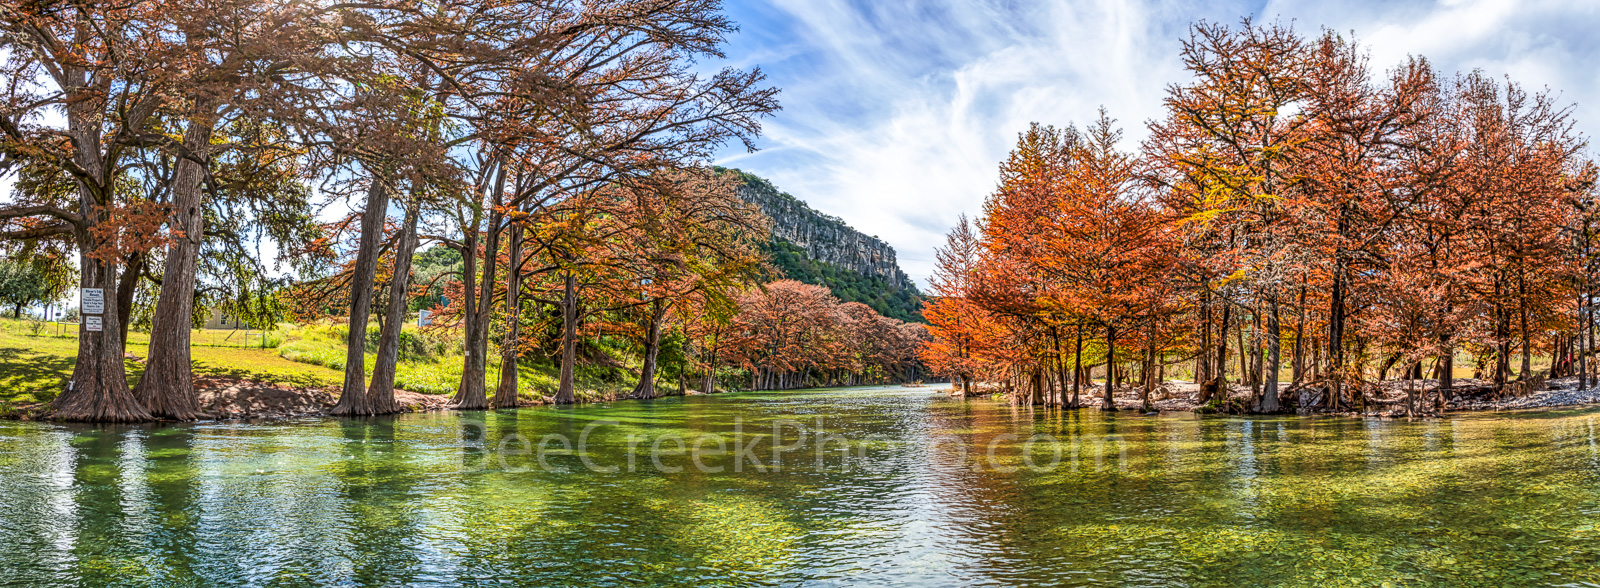 Fall Foliage, fall, cypress branches, cypress tree, maples, fall, autumn, frio river, old baldy, colors, Garner State Park, panorama, panoramic, Texas, landscape, texas hill country, canvas, prints, T